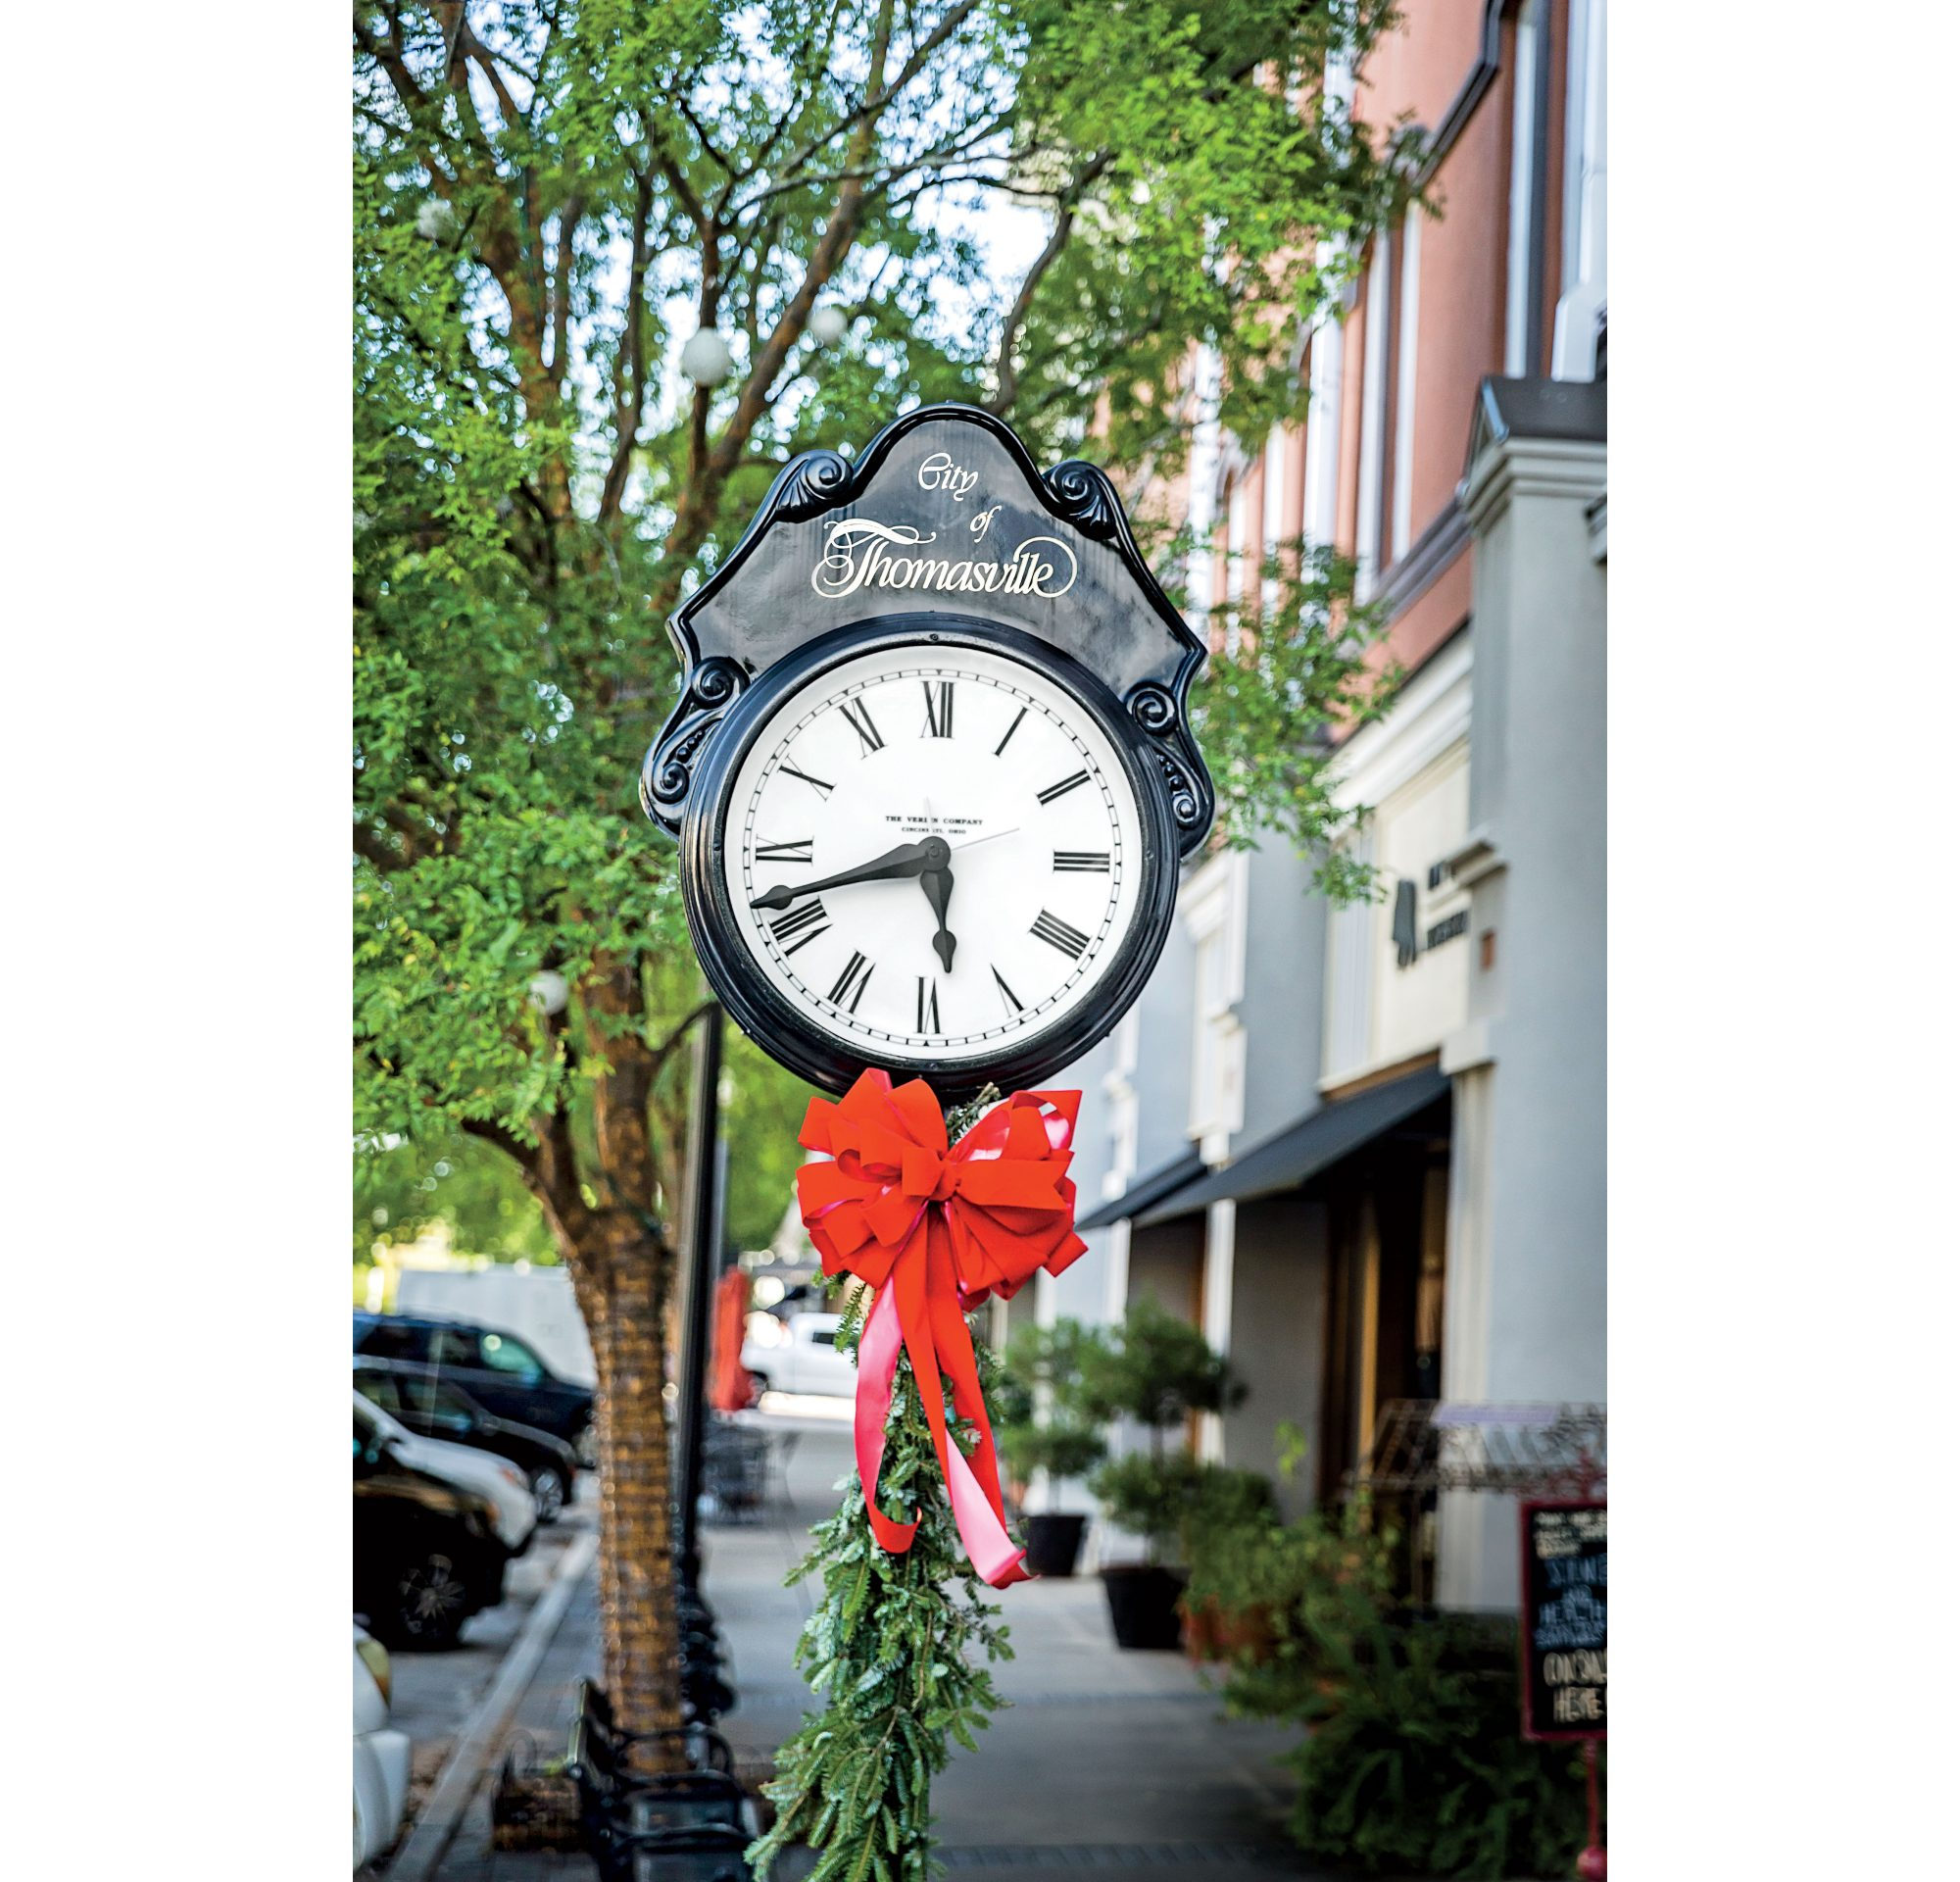 City of Thomasville Clock